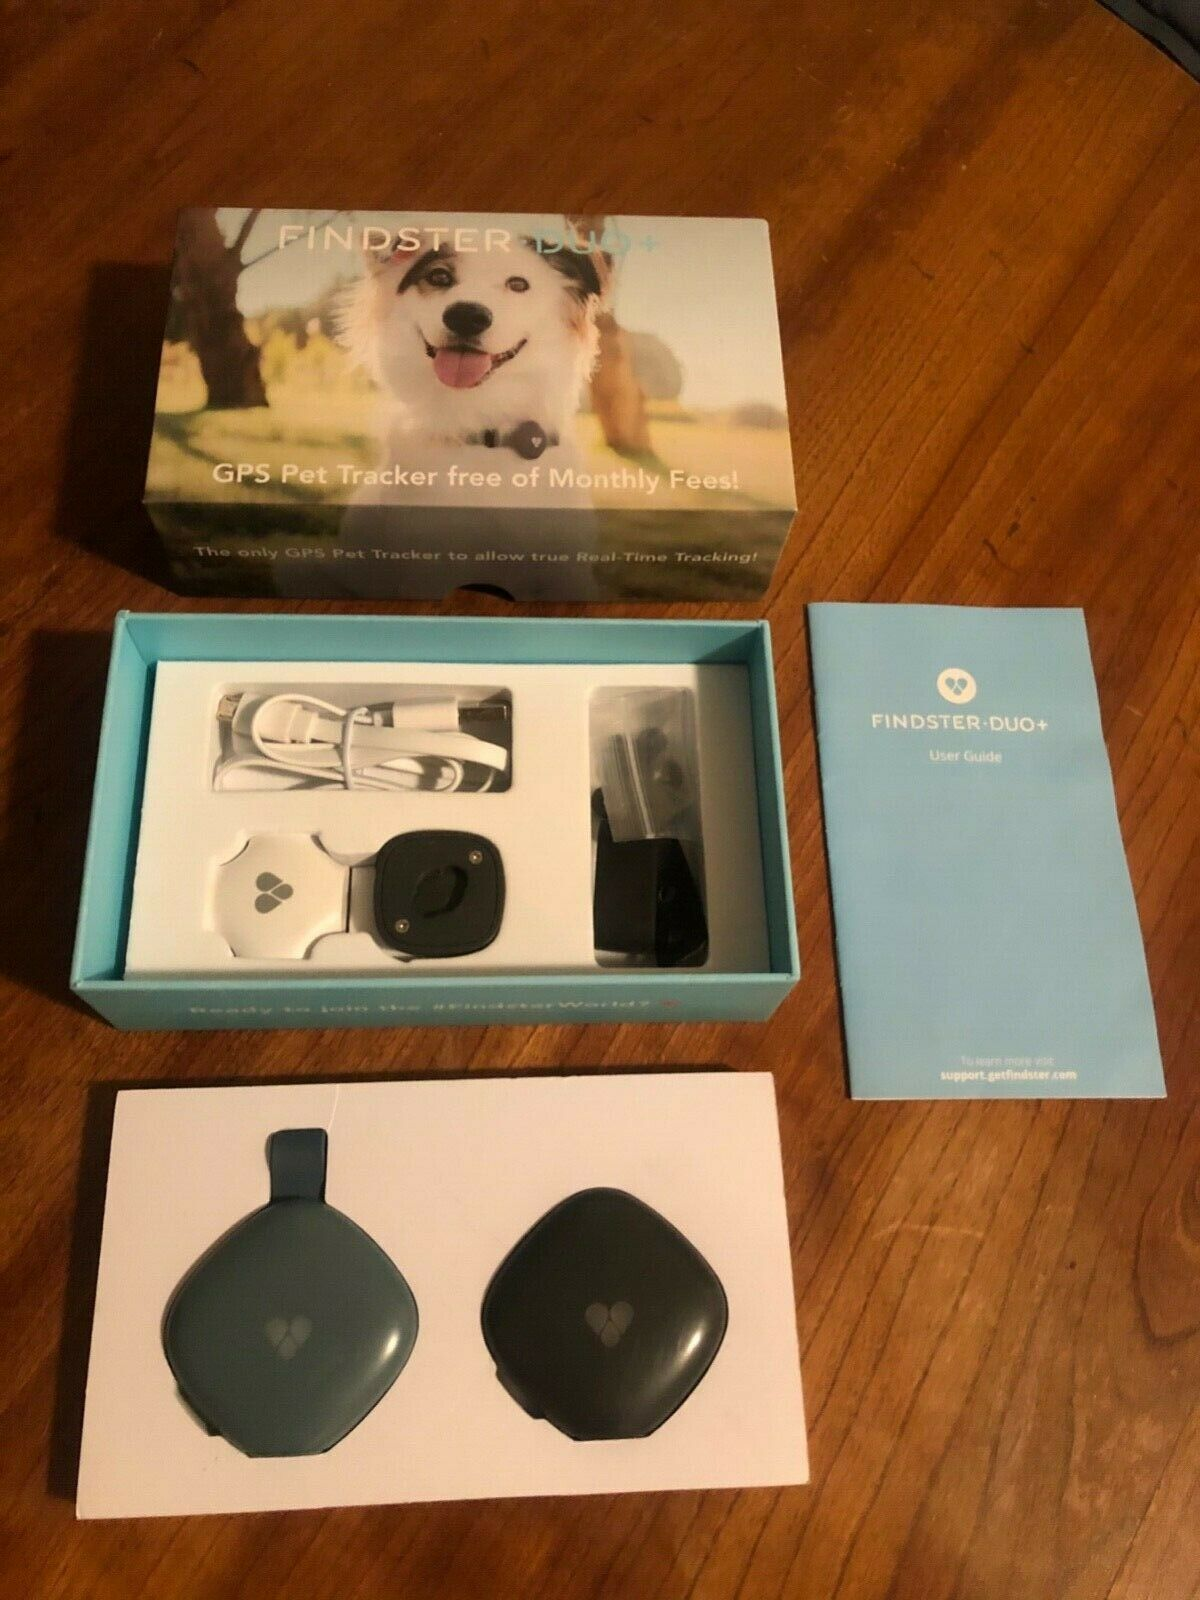 Findster Duo GPS Pet Tracker For Dogs And Cats - Free Of Monthly Fees - $56.00